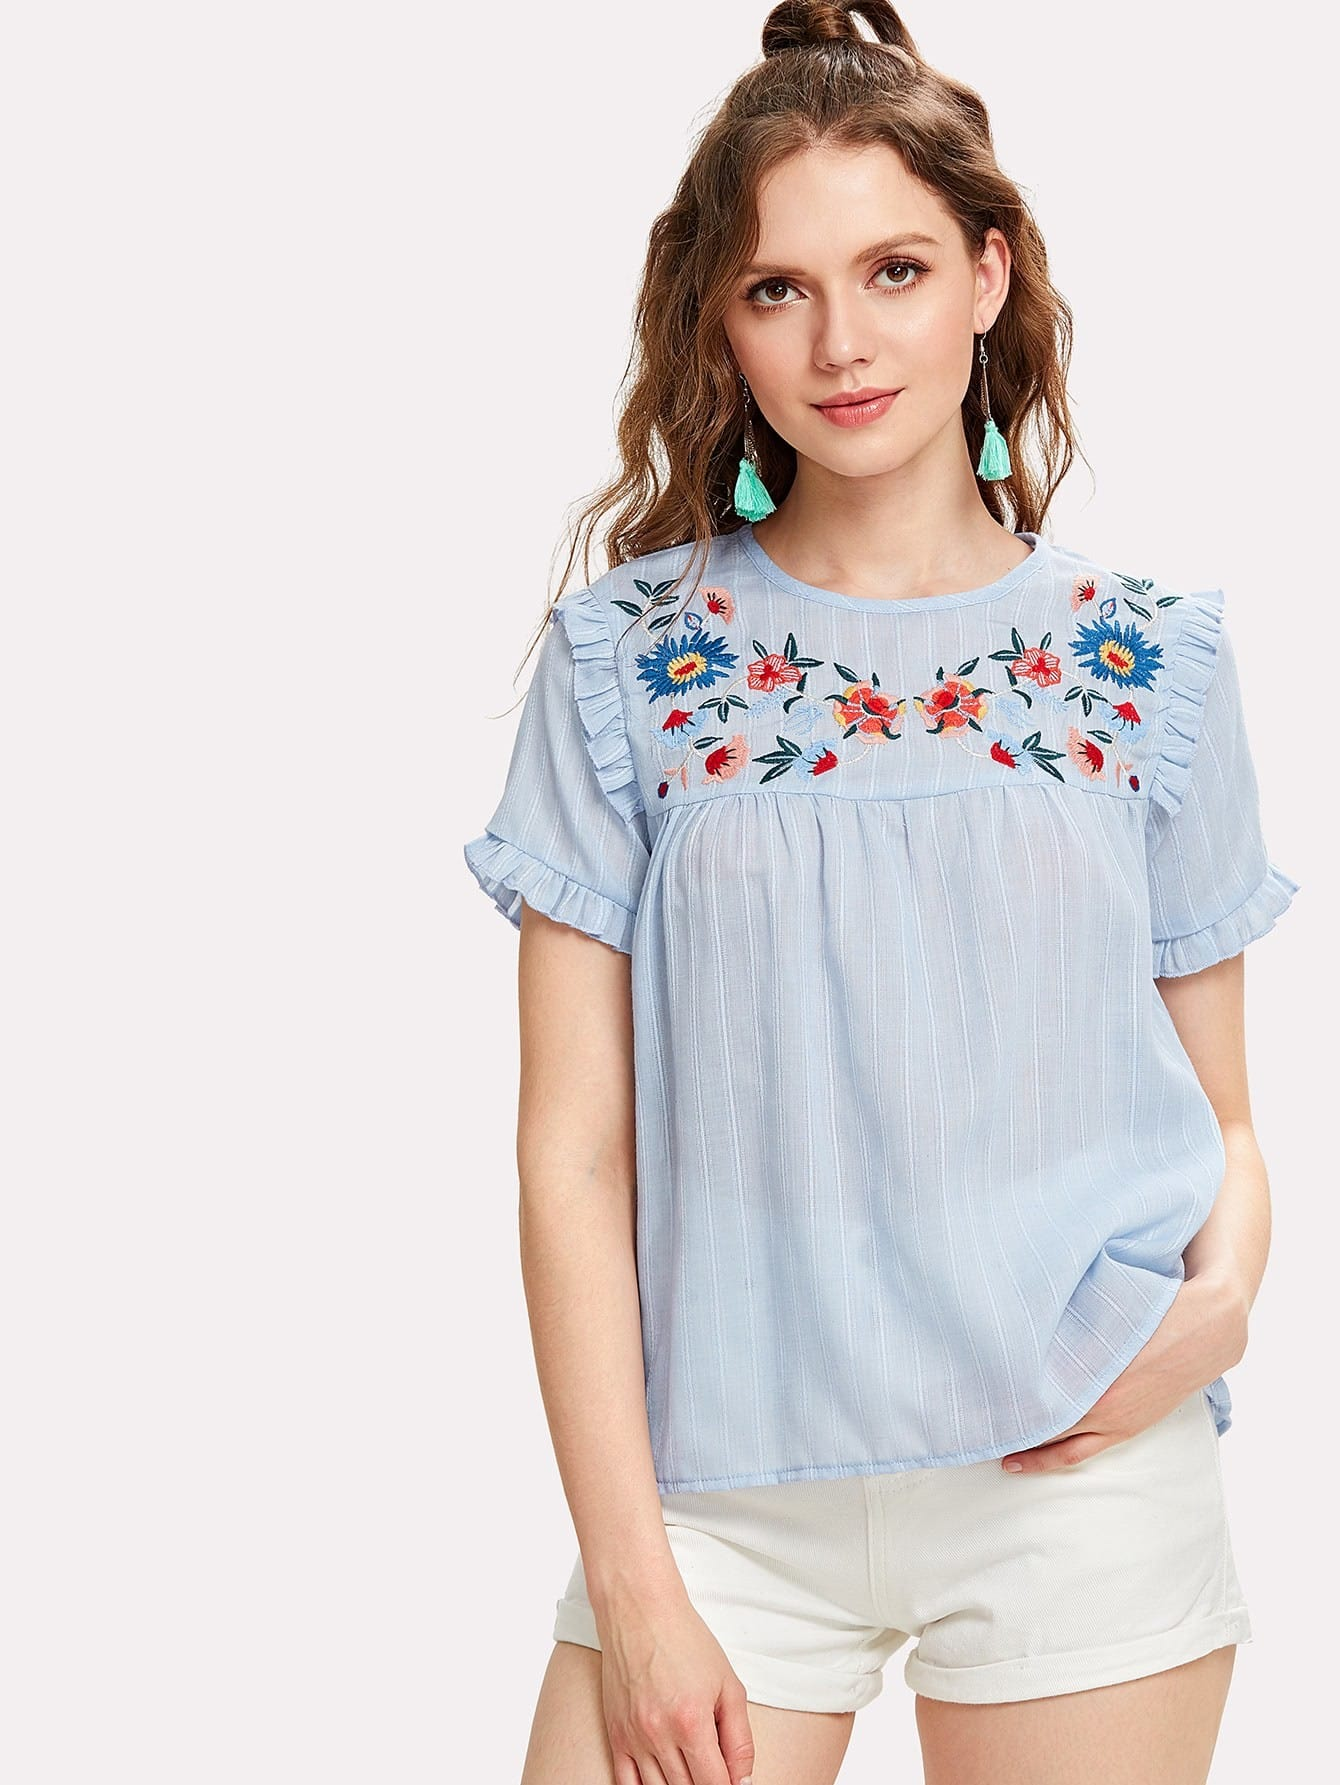 Embroidered Yoke Frilled Pinstripe Top frilled collar lace yoke sleeveless top